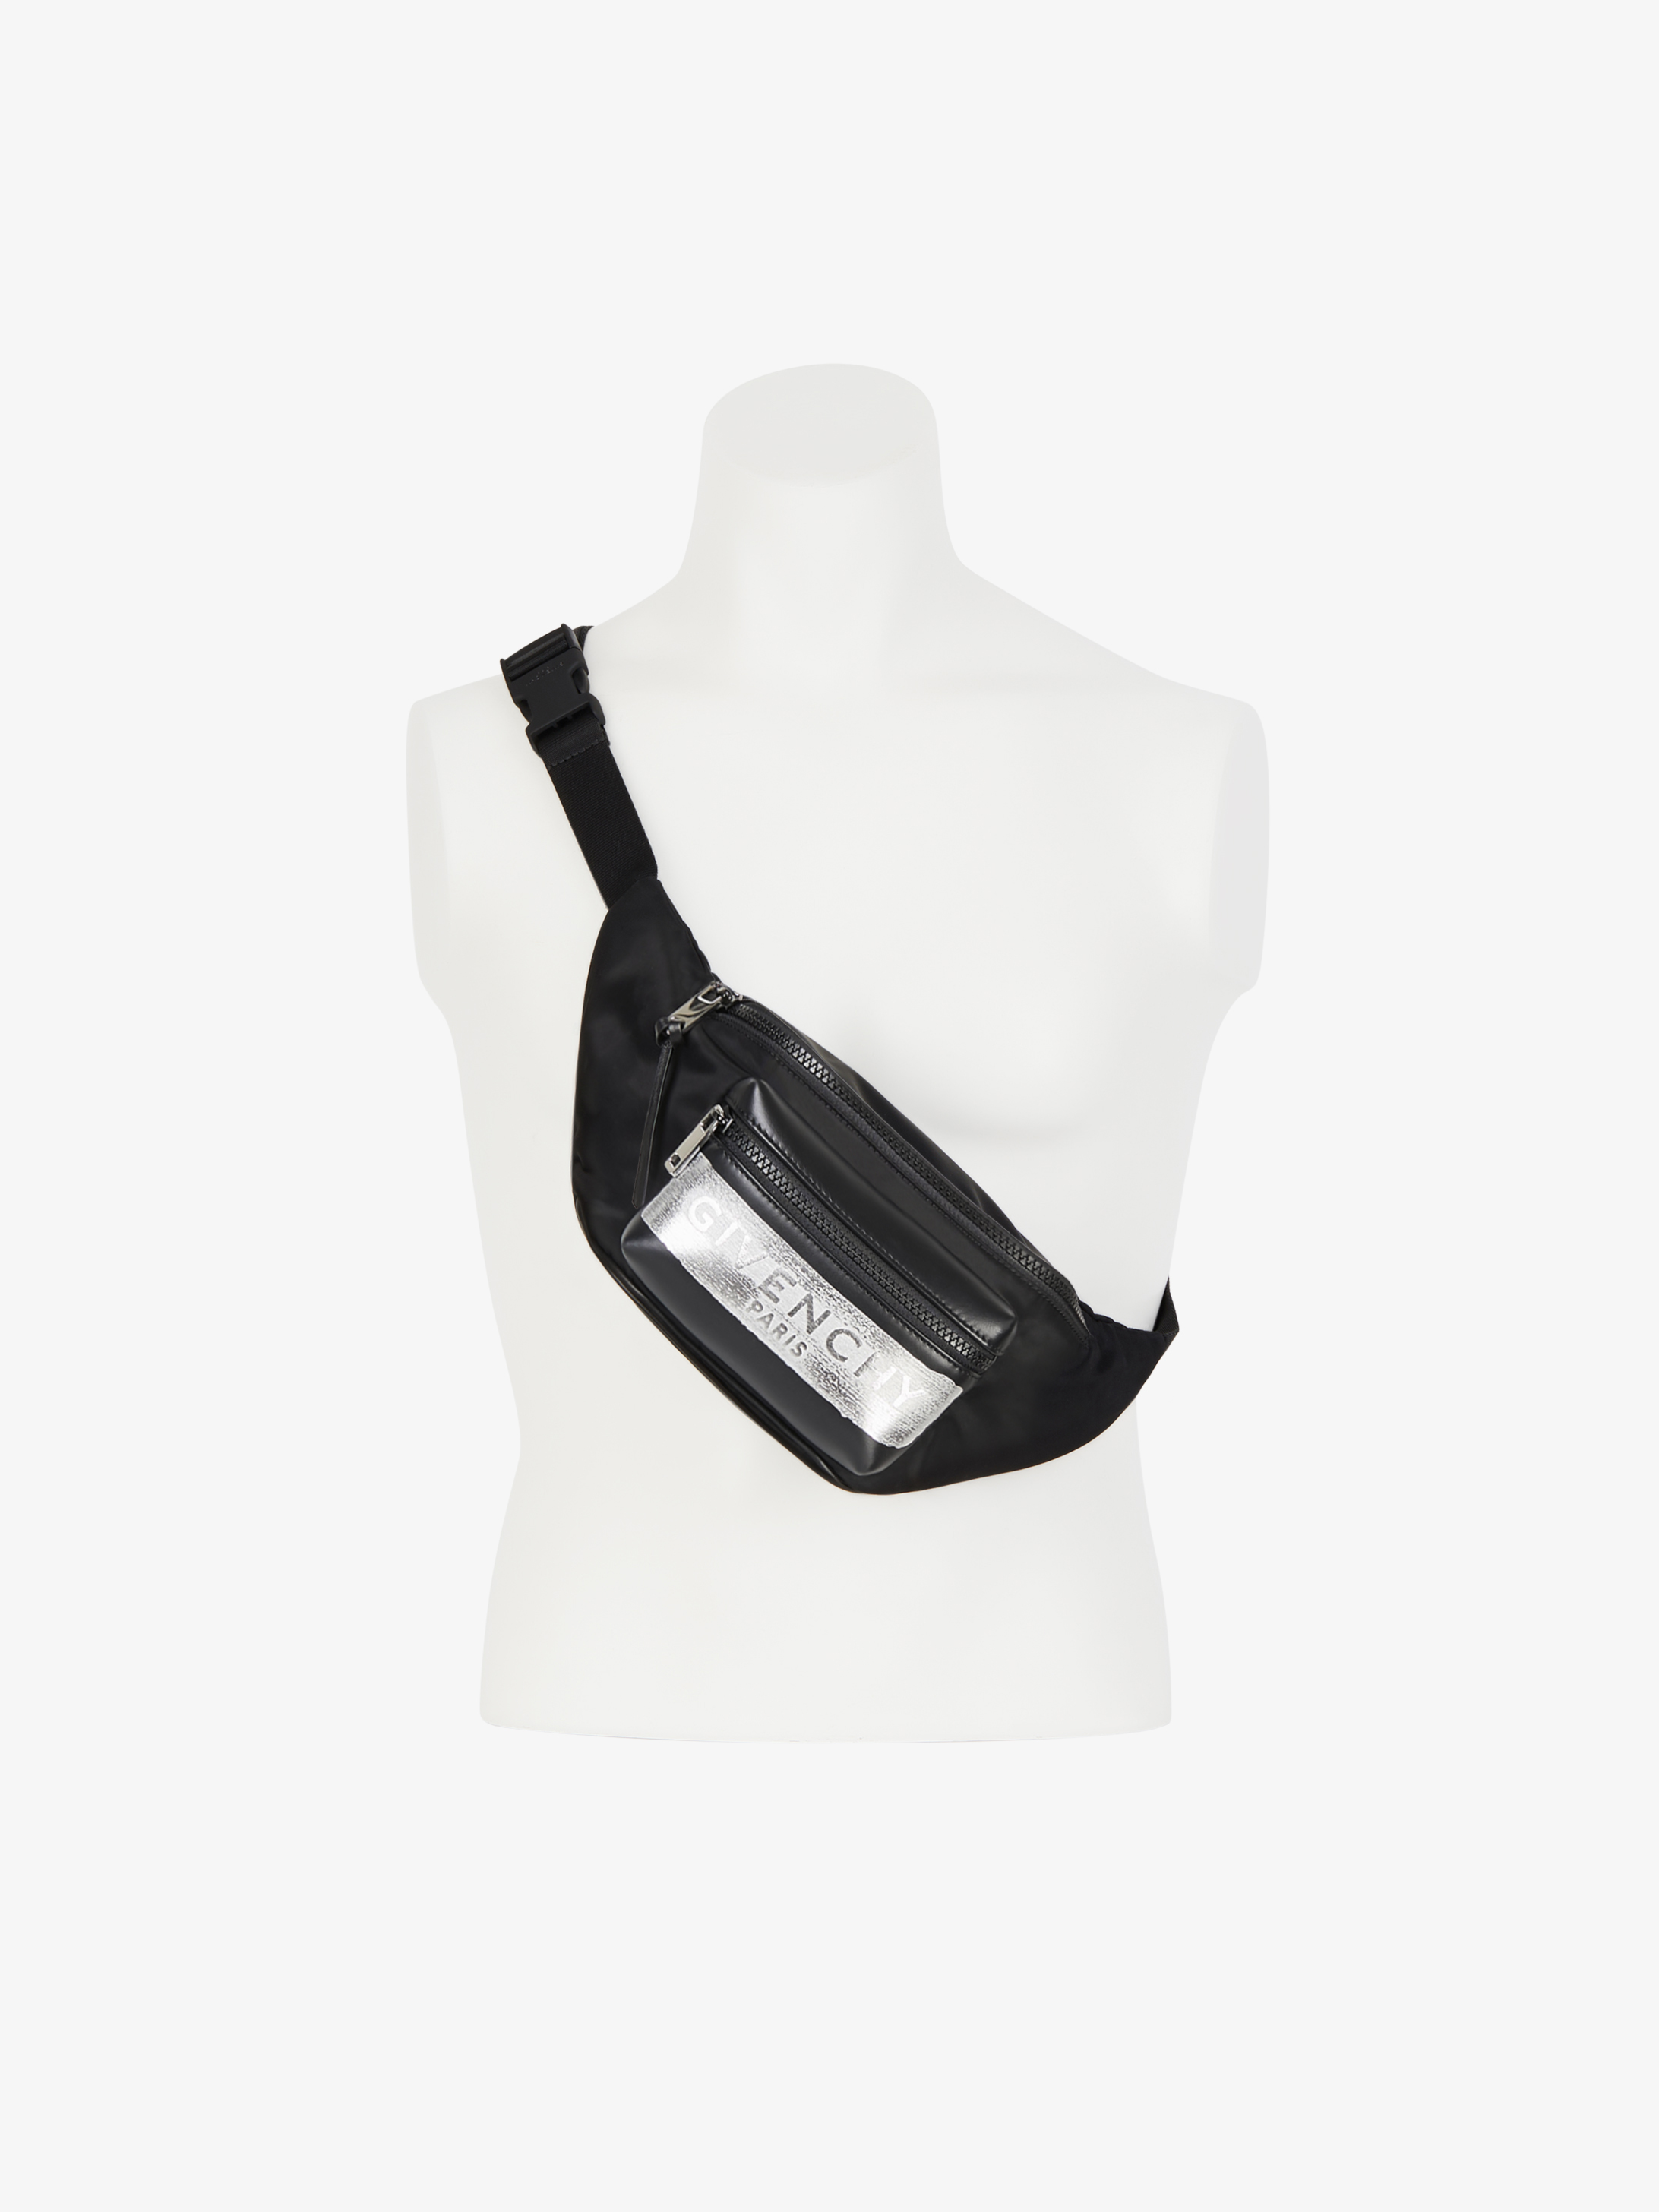 GIVENCHY bum bag in nylon with latex band